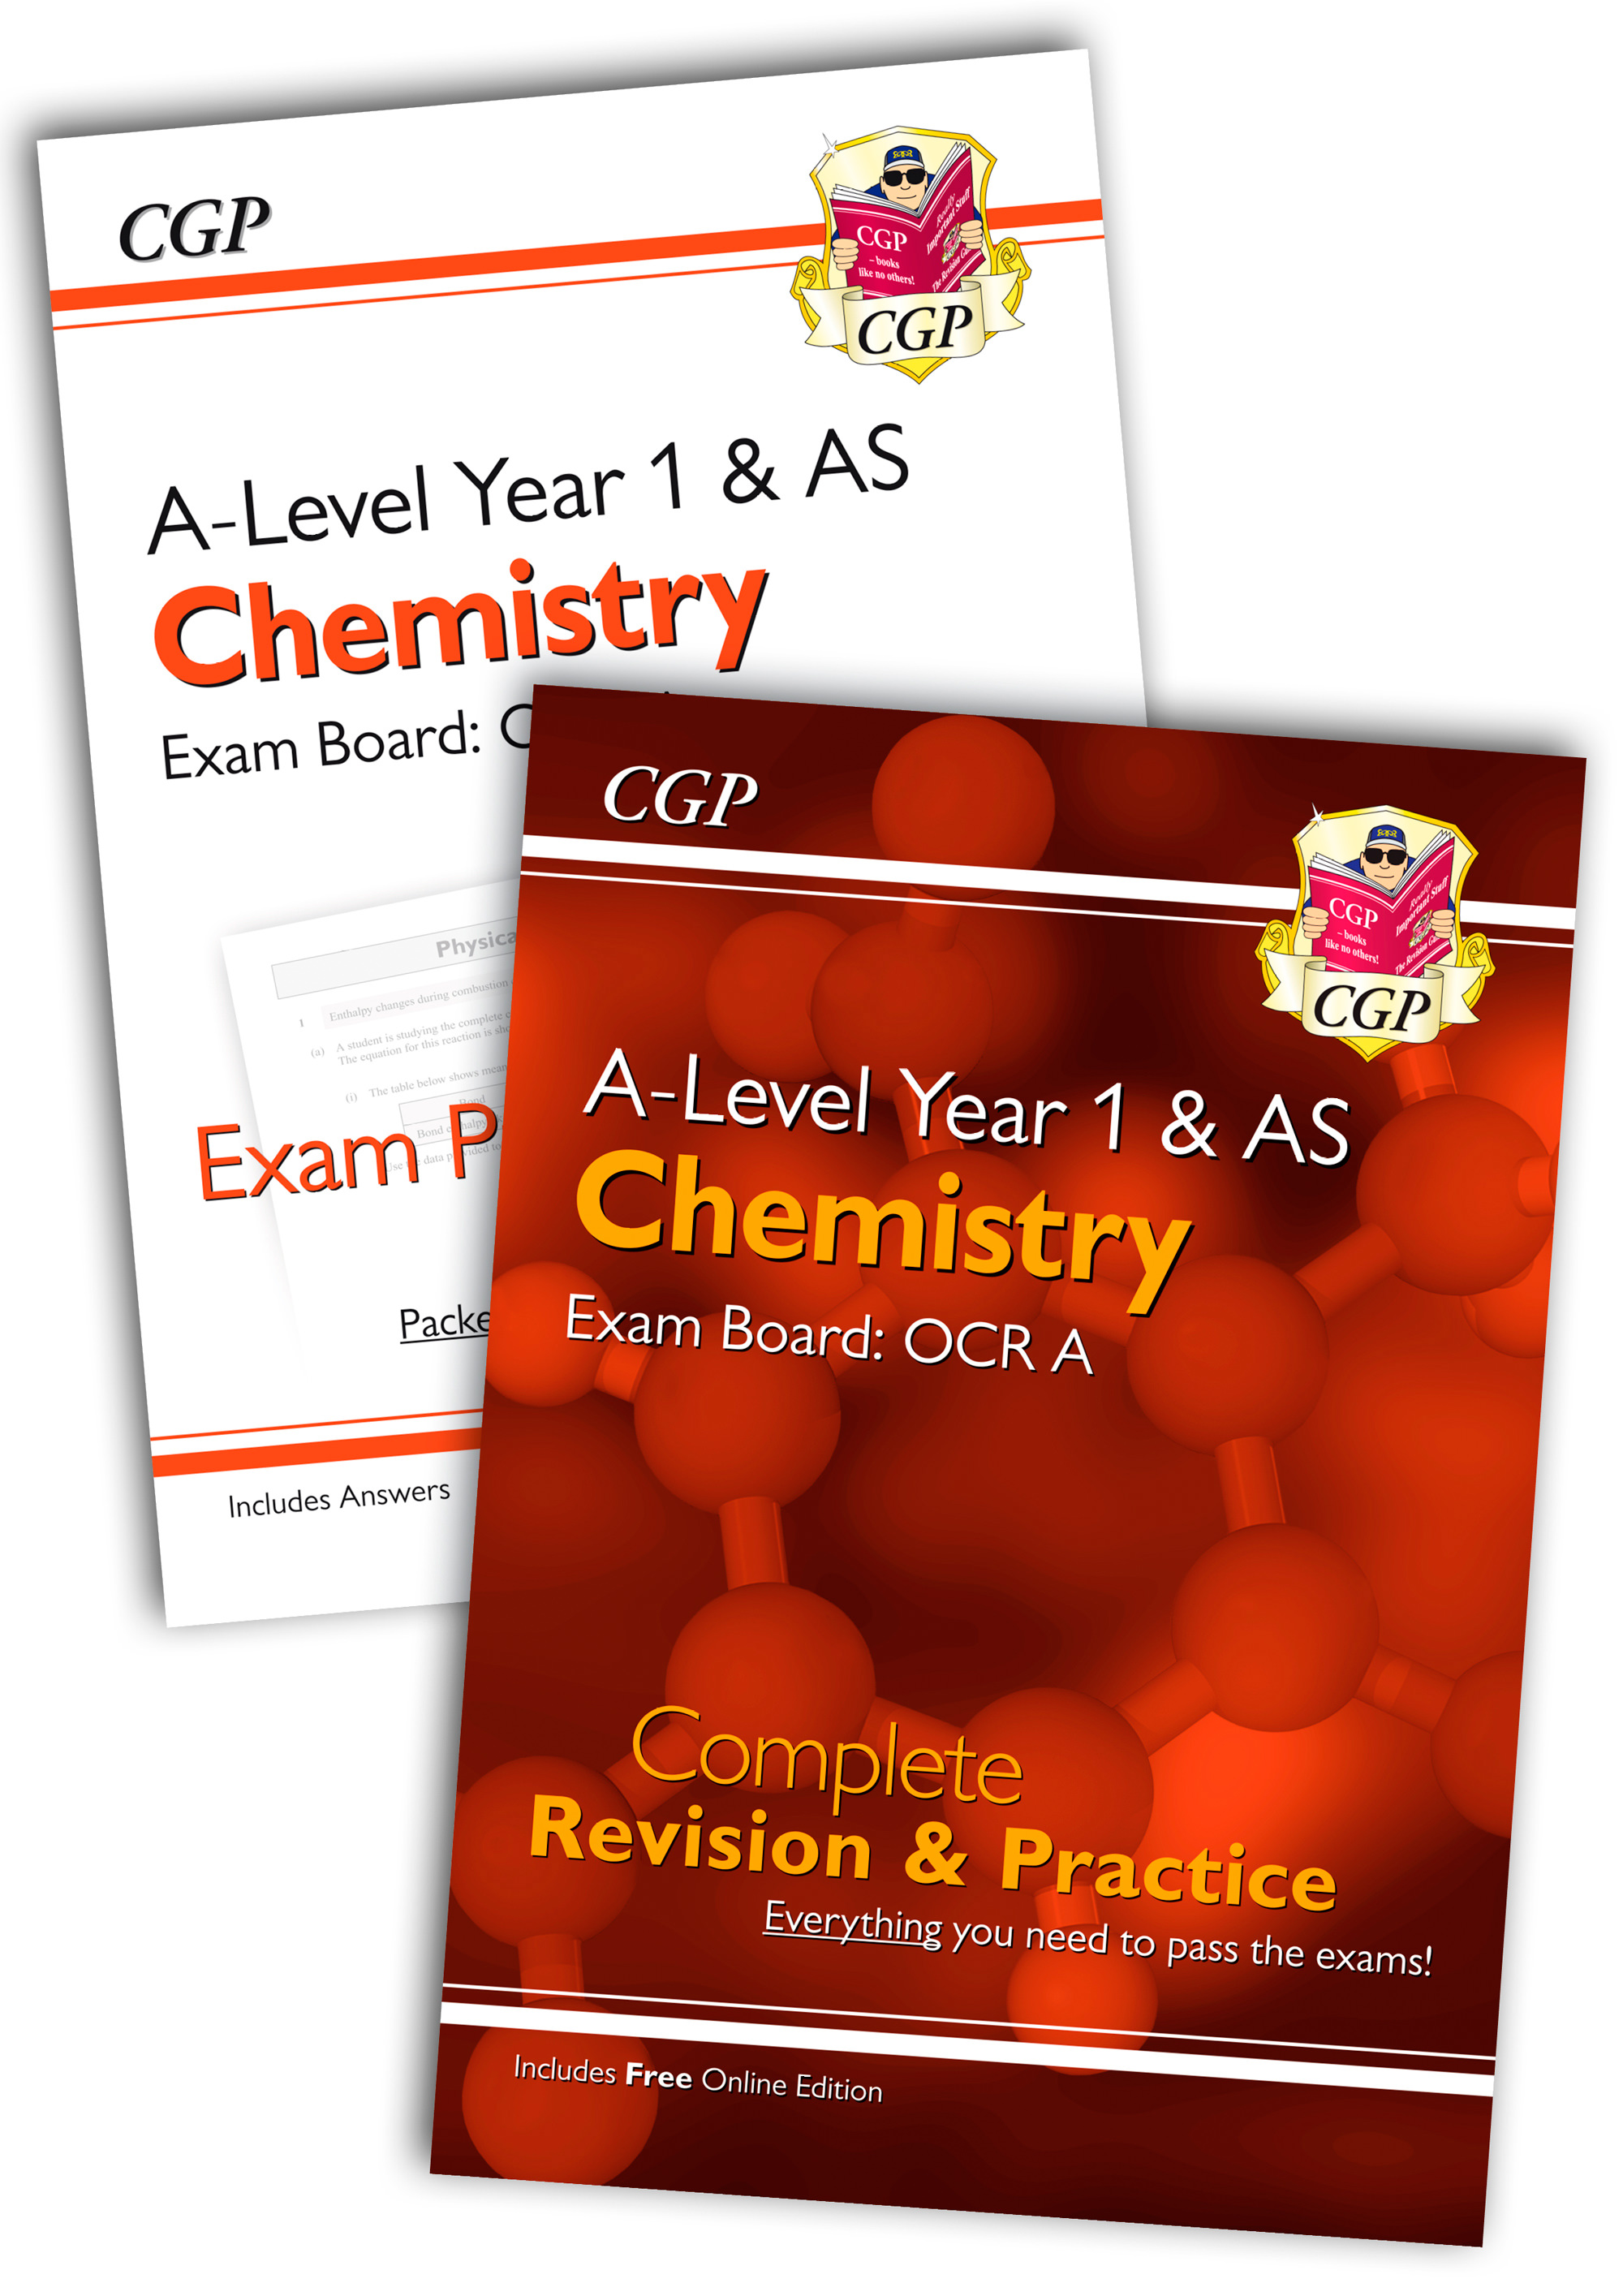 CRARQB51 - New 2018 Complete Revision and Exam Practice A-Level Chemistry Bundle: OCR A Year 1 & AS